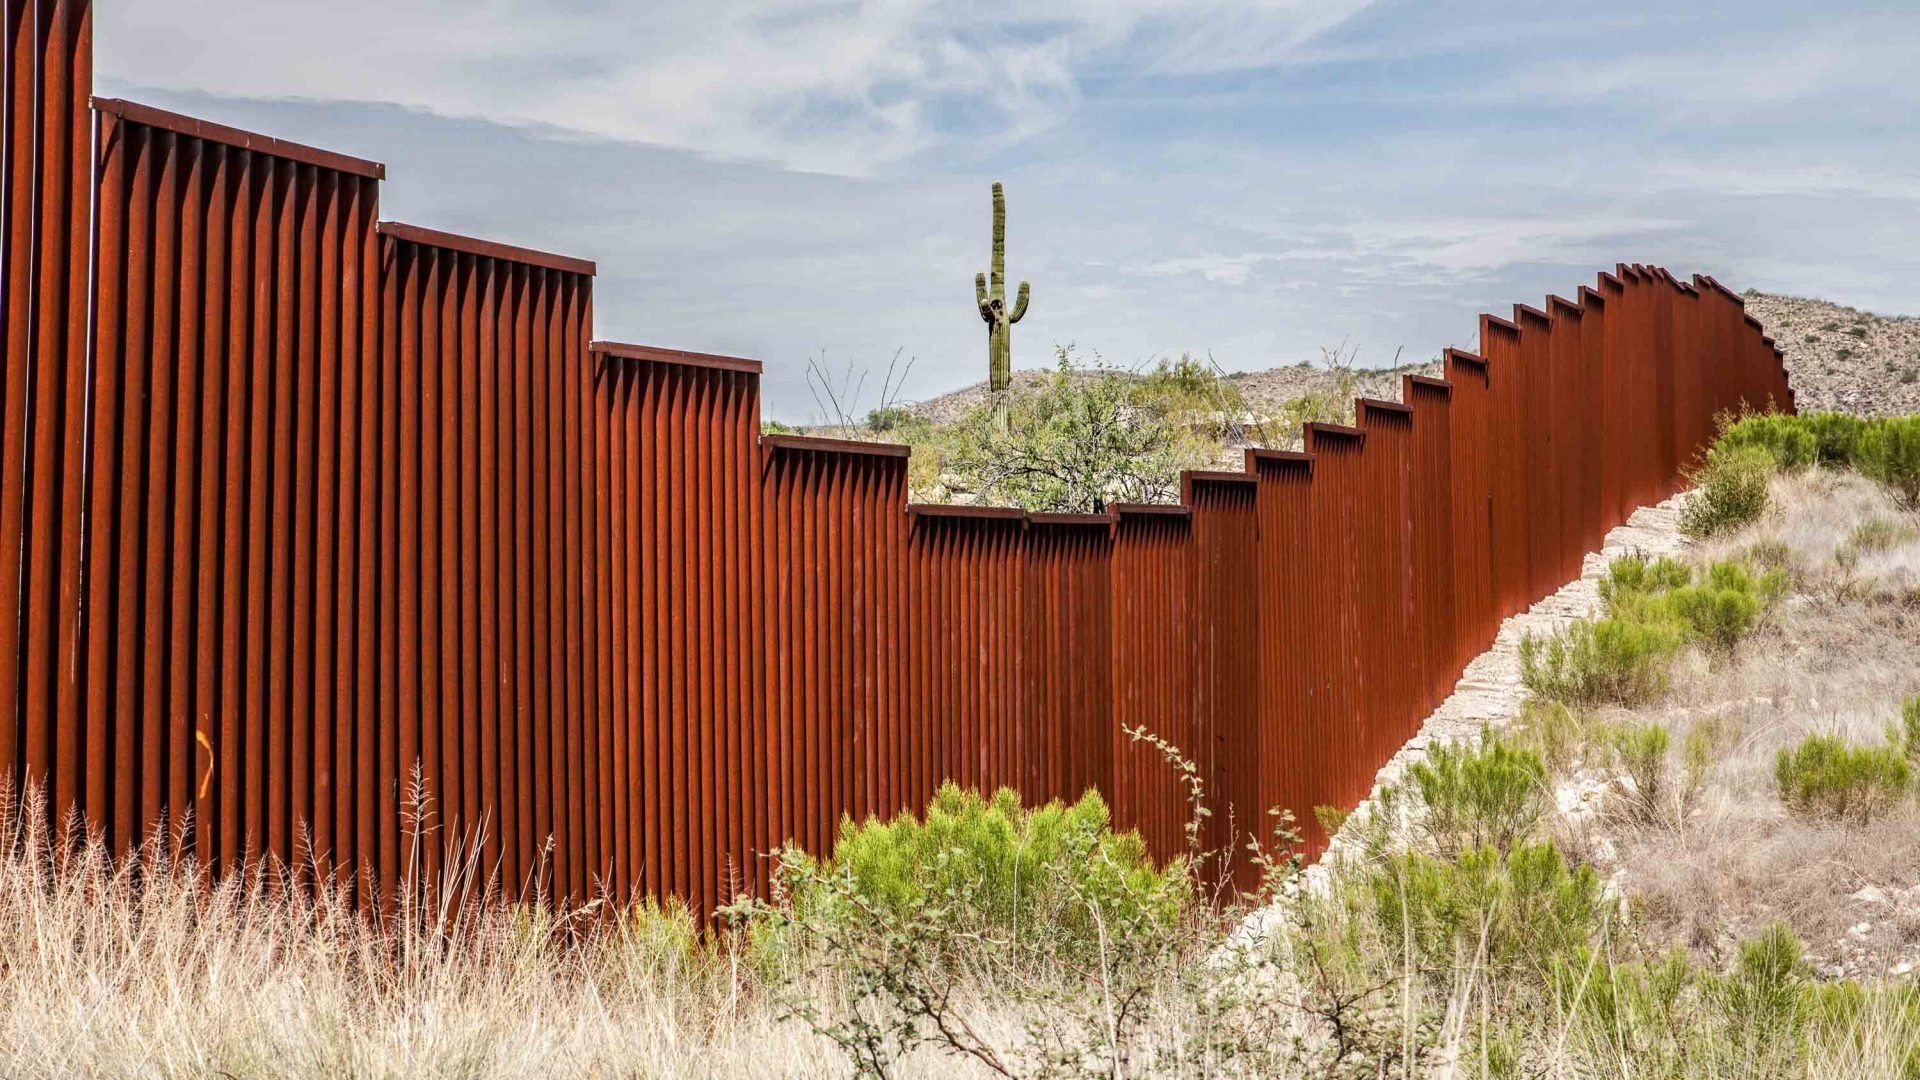 Borders: What are they good for?